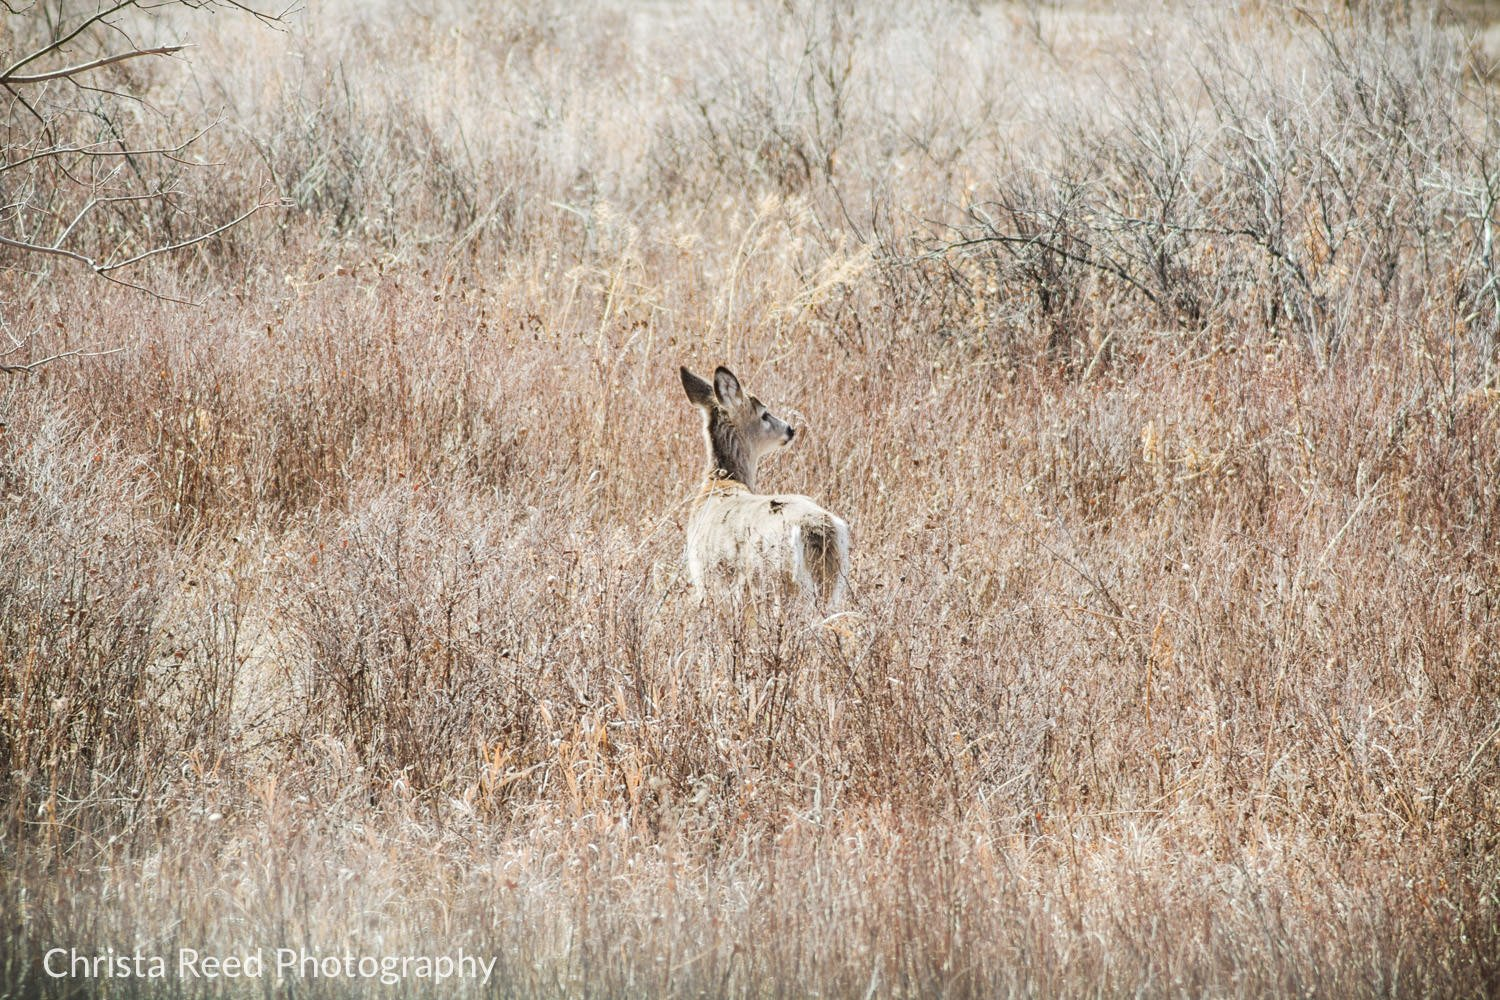 Deer at Theodore Roosevelt National Park in North Dakota.